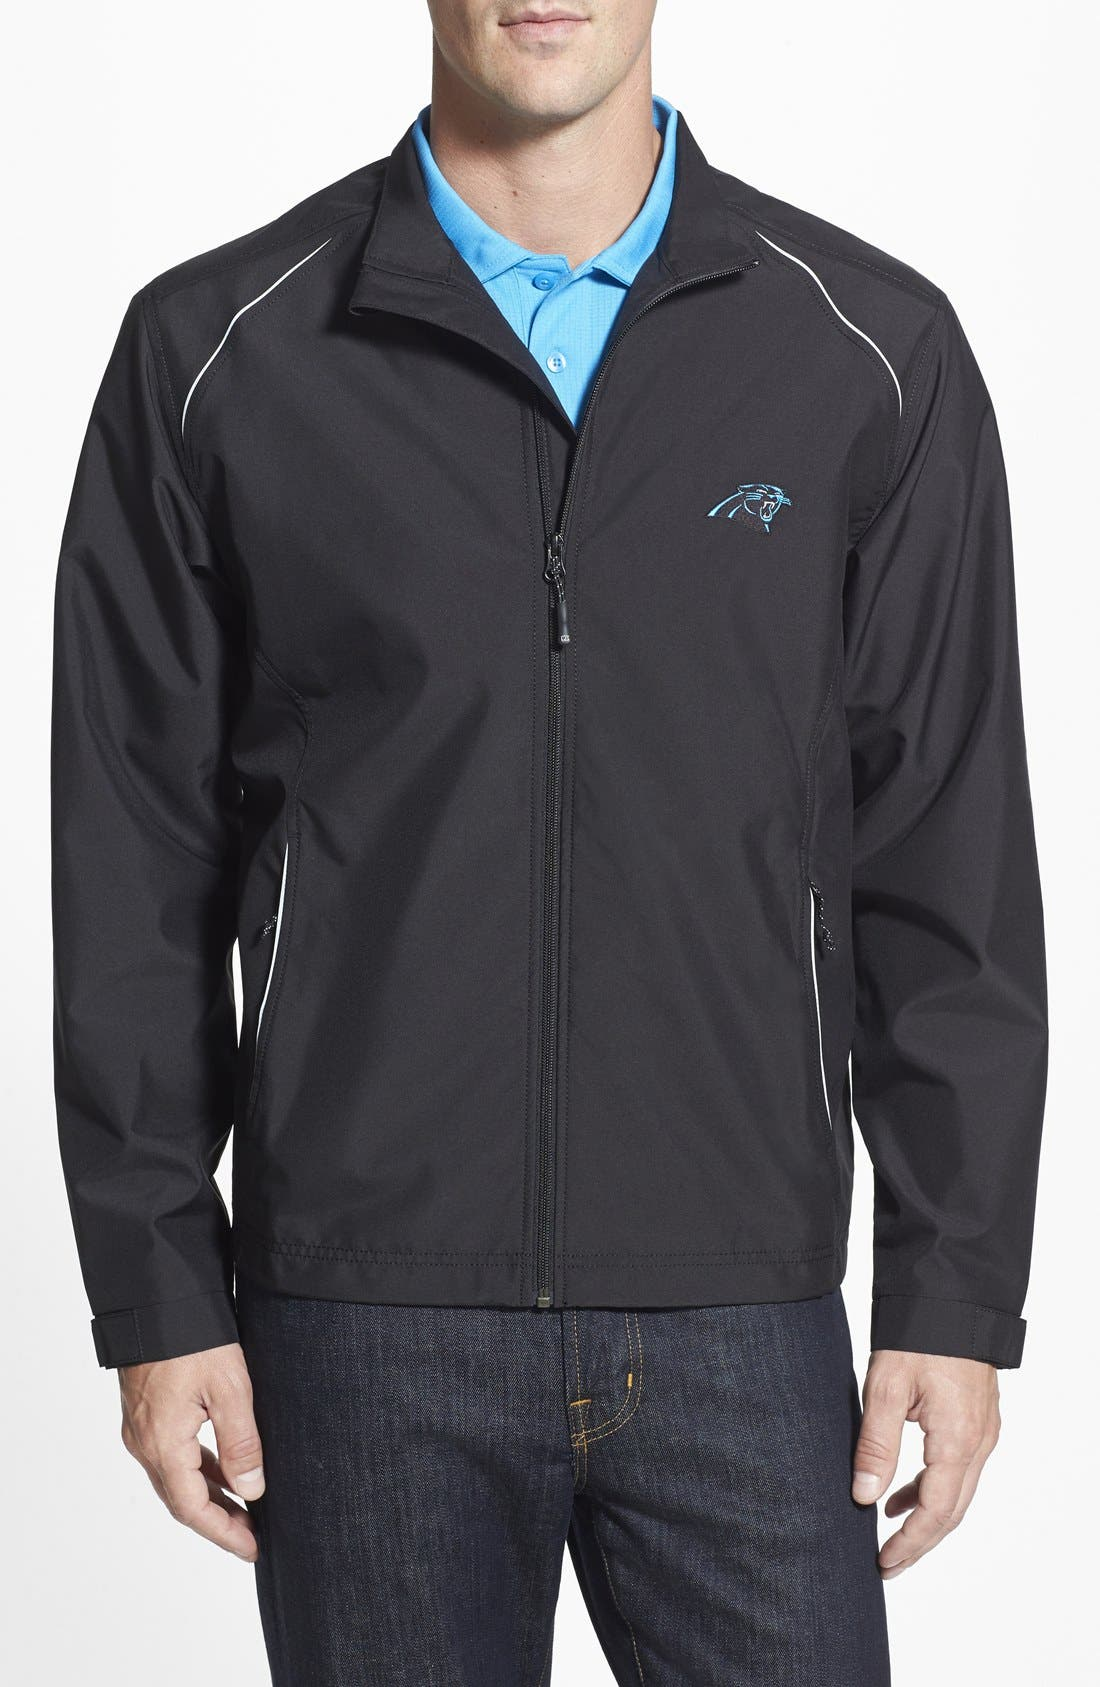 Carolina Panthers - Beacon WeatherTec Wind & Water Resistant Jacket,                         Main,                         color, 001